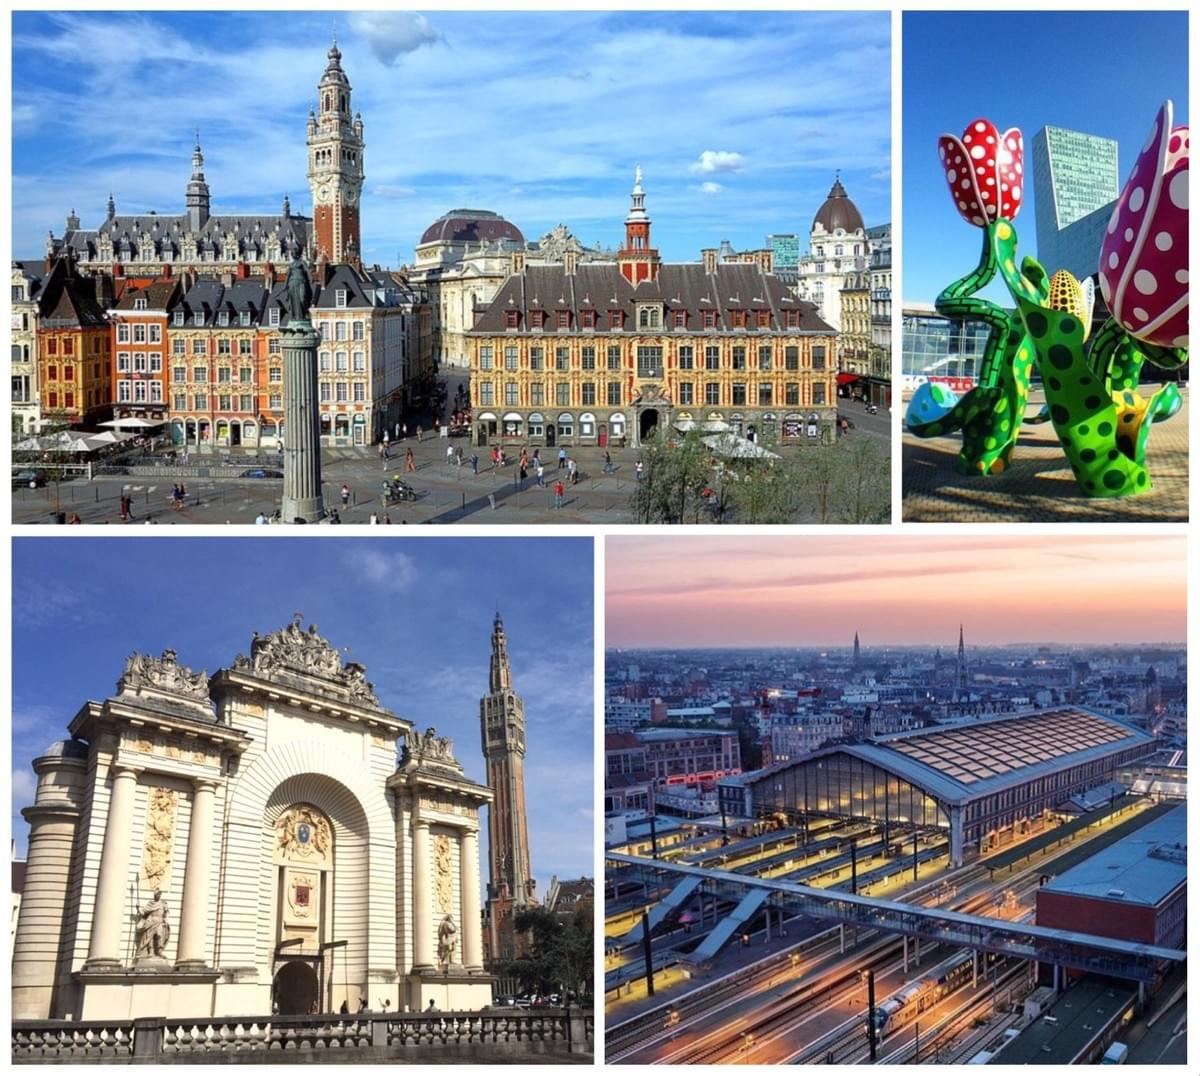 lille dates de construction des monuments de la ville grand place euralille porte de paris gare lille flandres